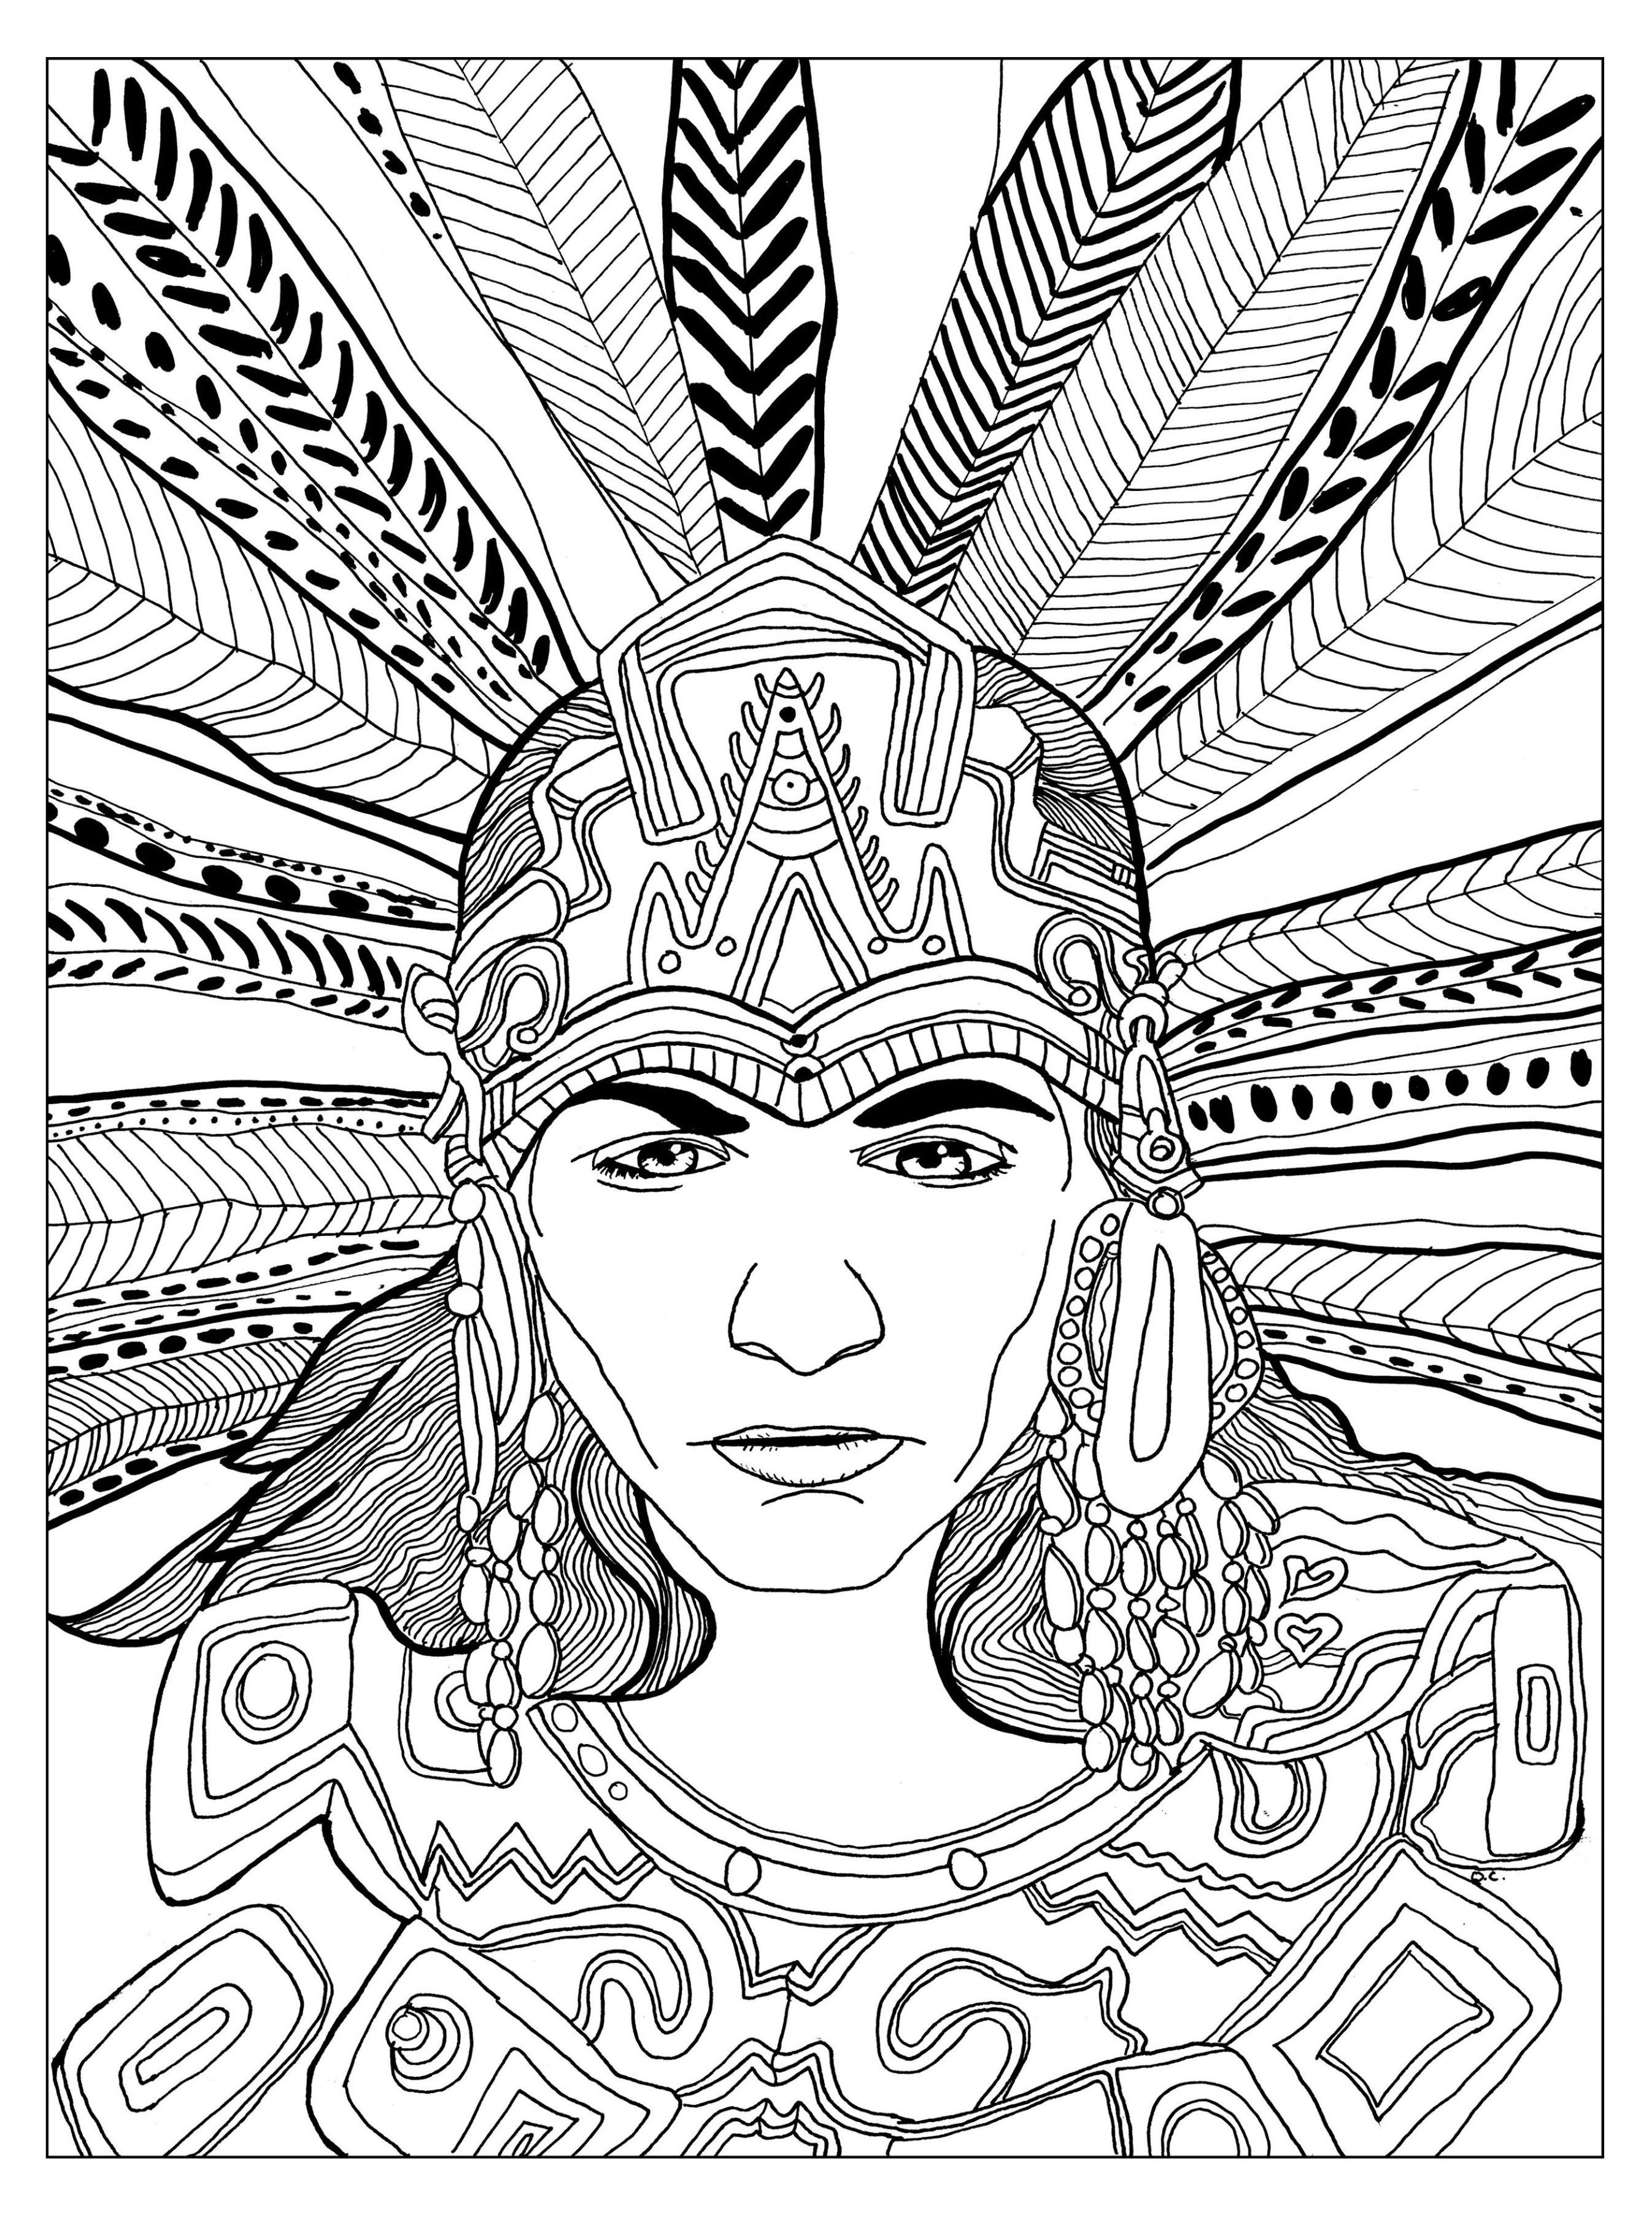 Chief Mayan Mayans Incas Coloring Pages For Adults Just